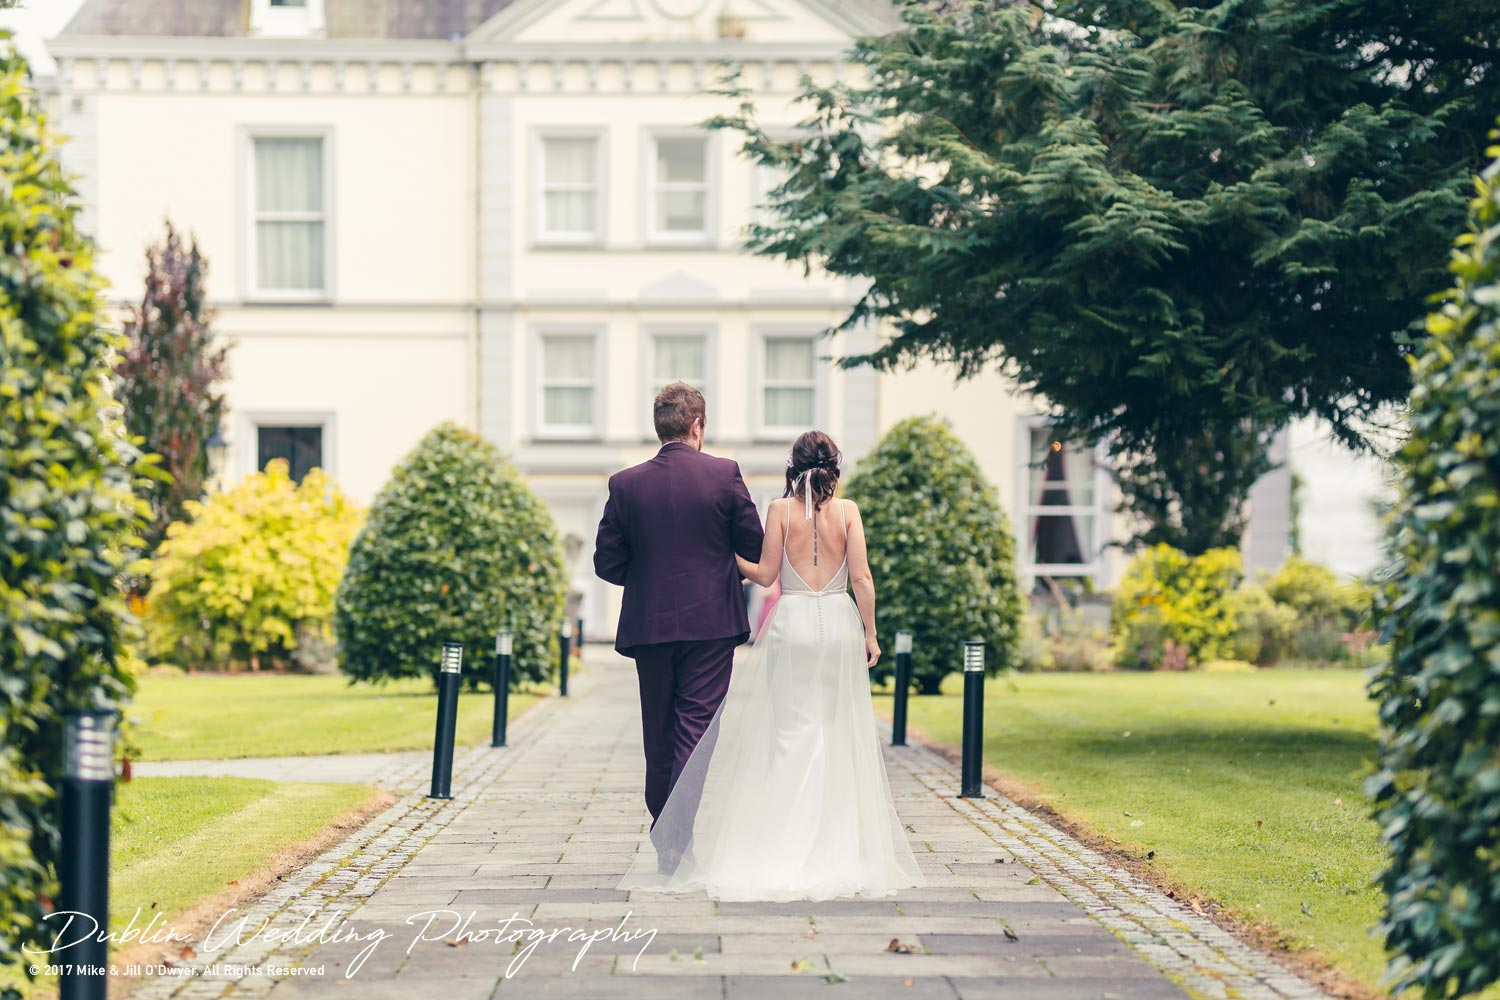 Moyvalley, Balyna House, Wedding Photographer, Kildare, Dublin, Bride and Groom walking towards Balyna House